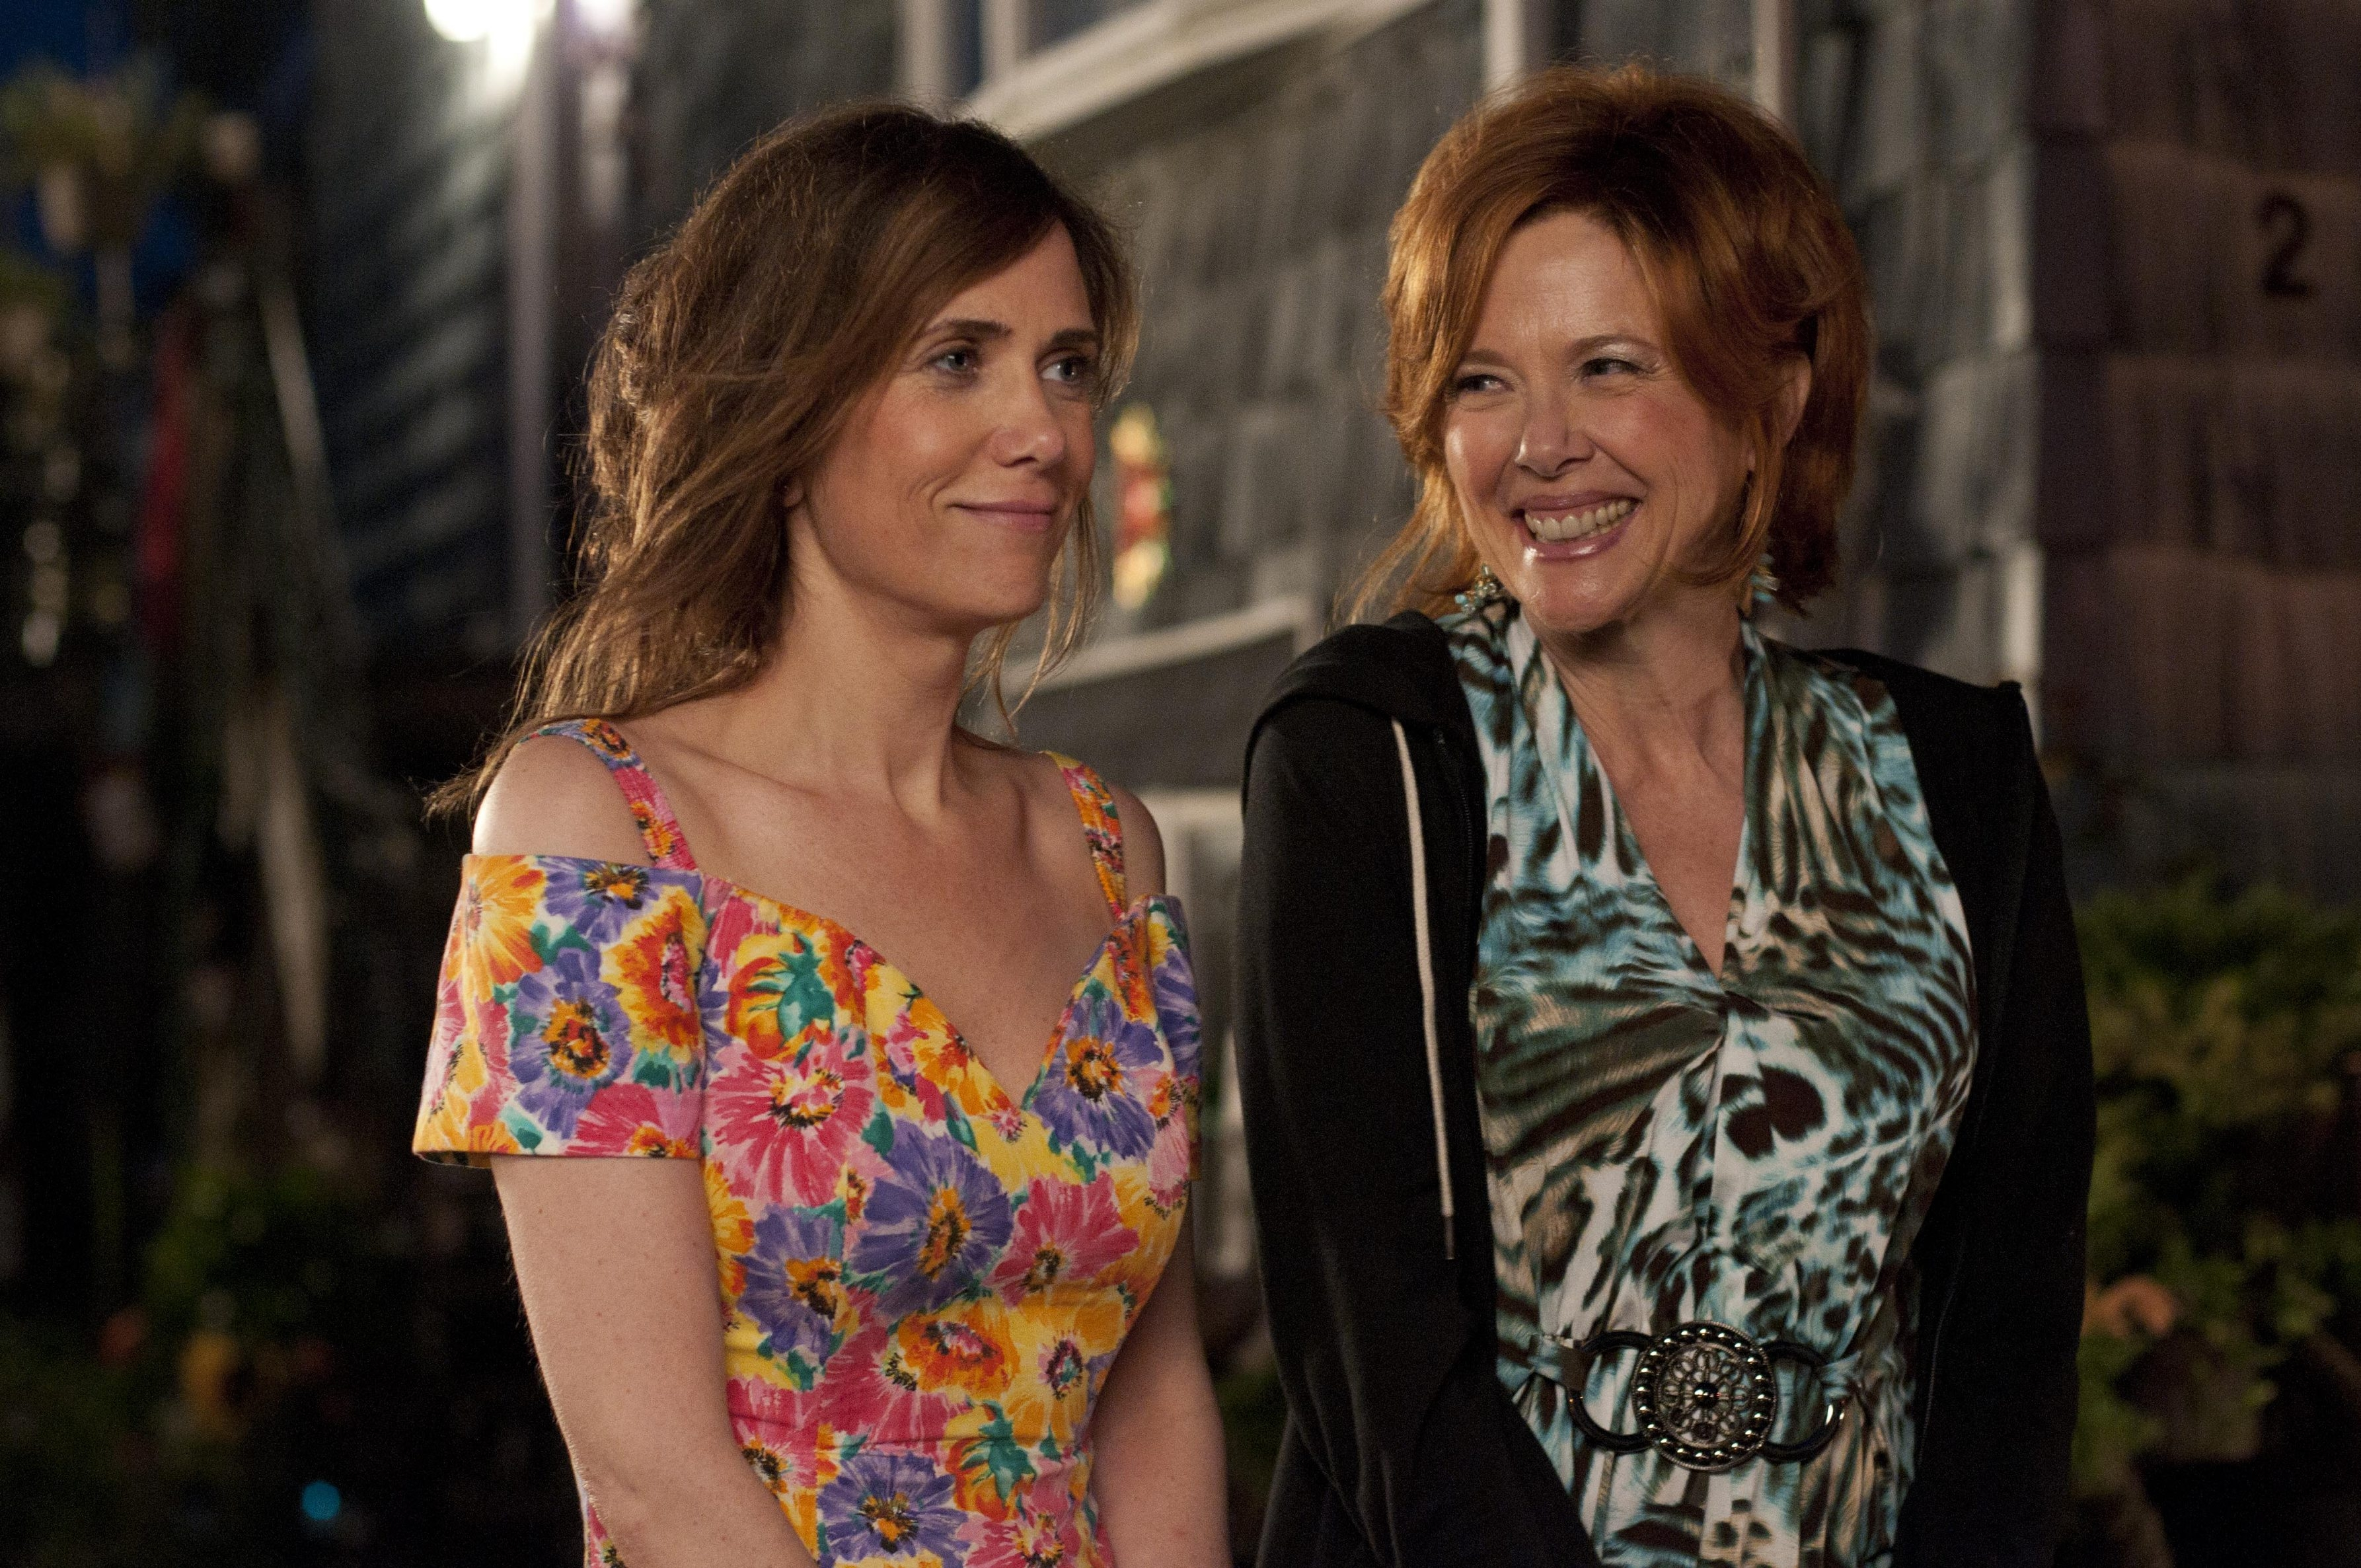 Kristen Wiig, left, and Annette Bening play a dysfunctional daughter and mother in 'Girl Most Likely.'